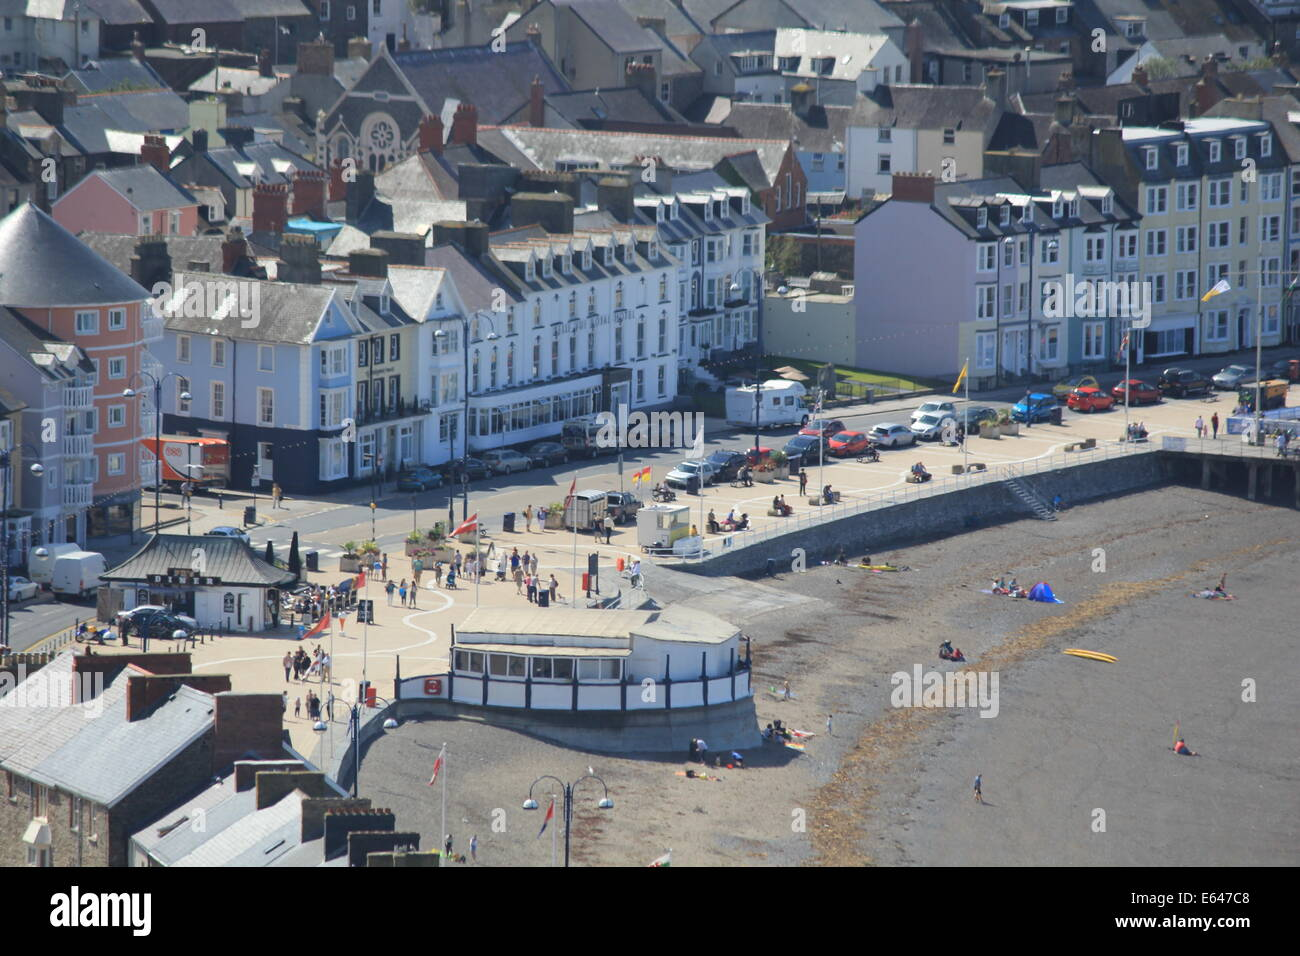 Aberystwyth seafront & bandstand - Stock Image